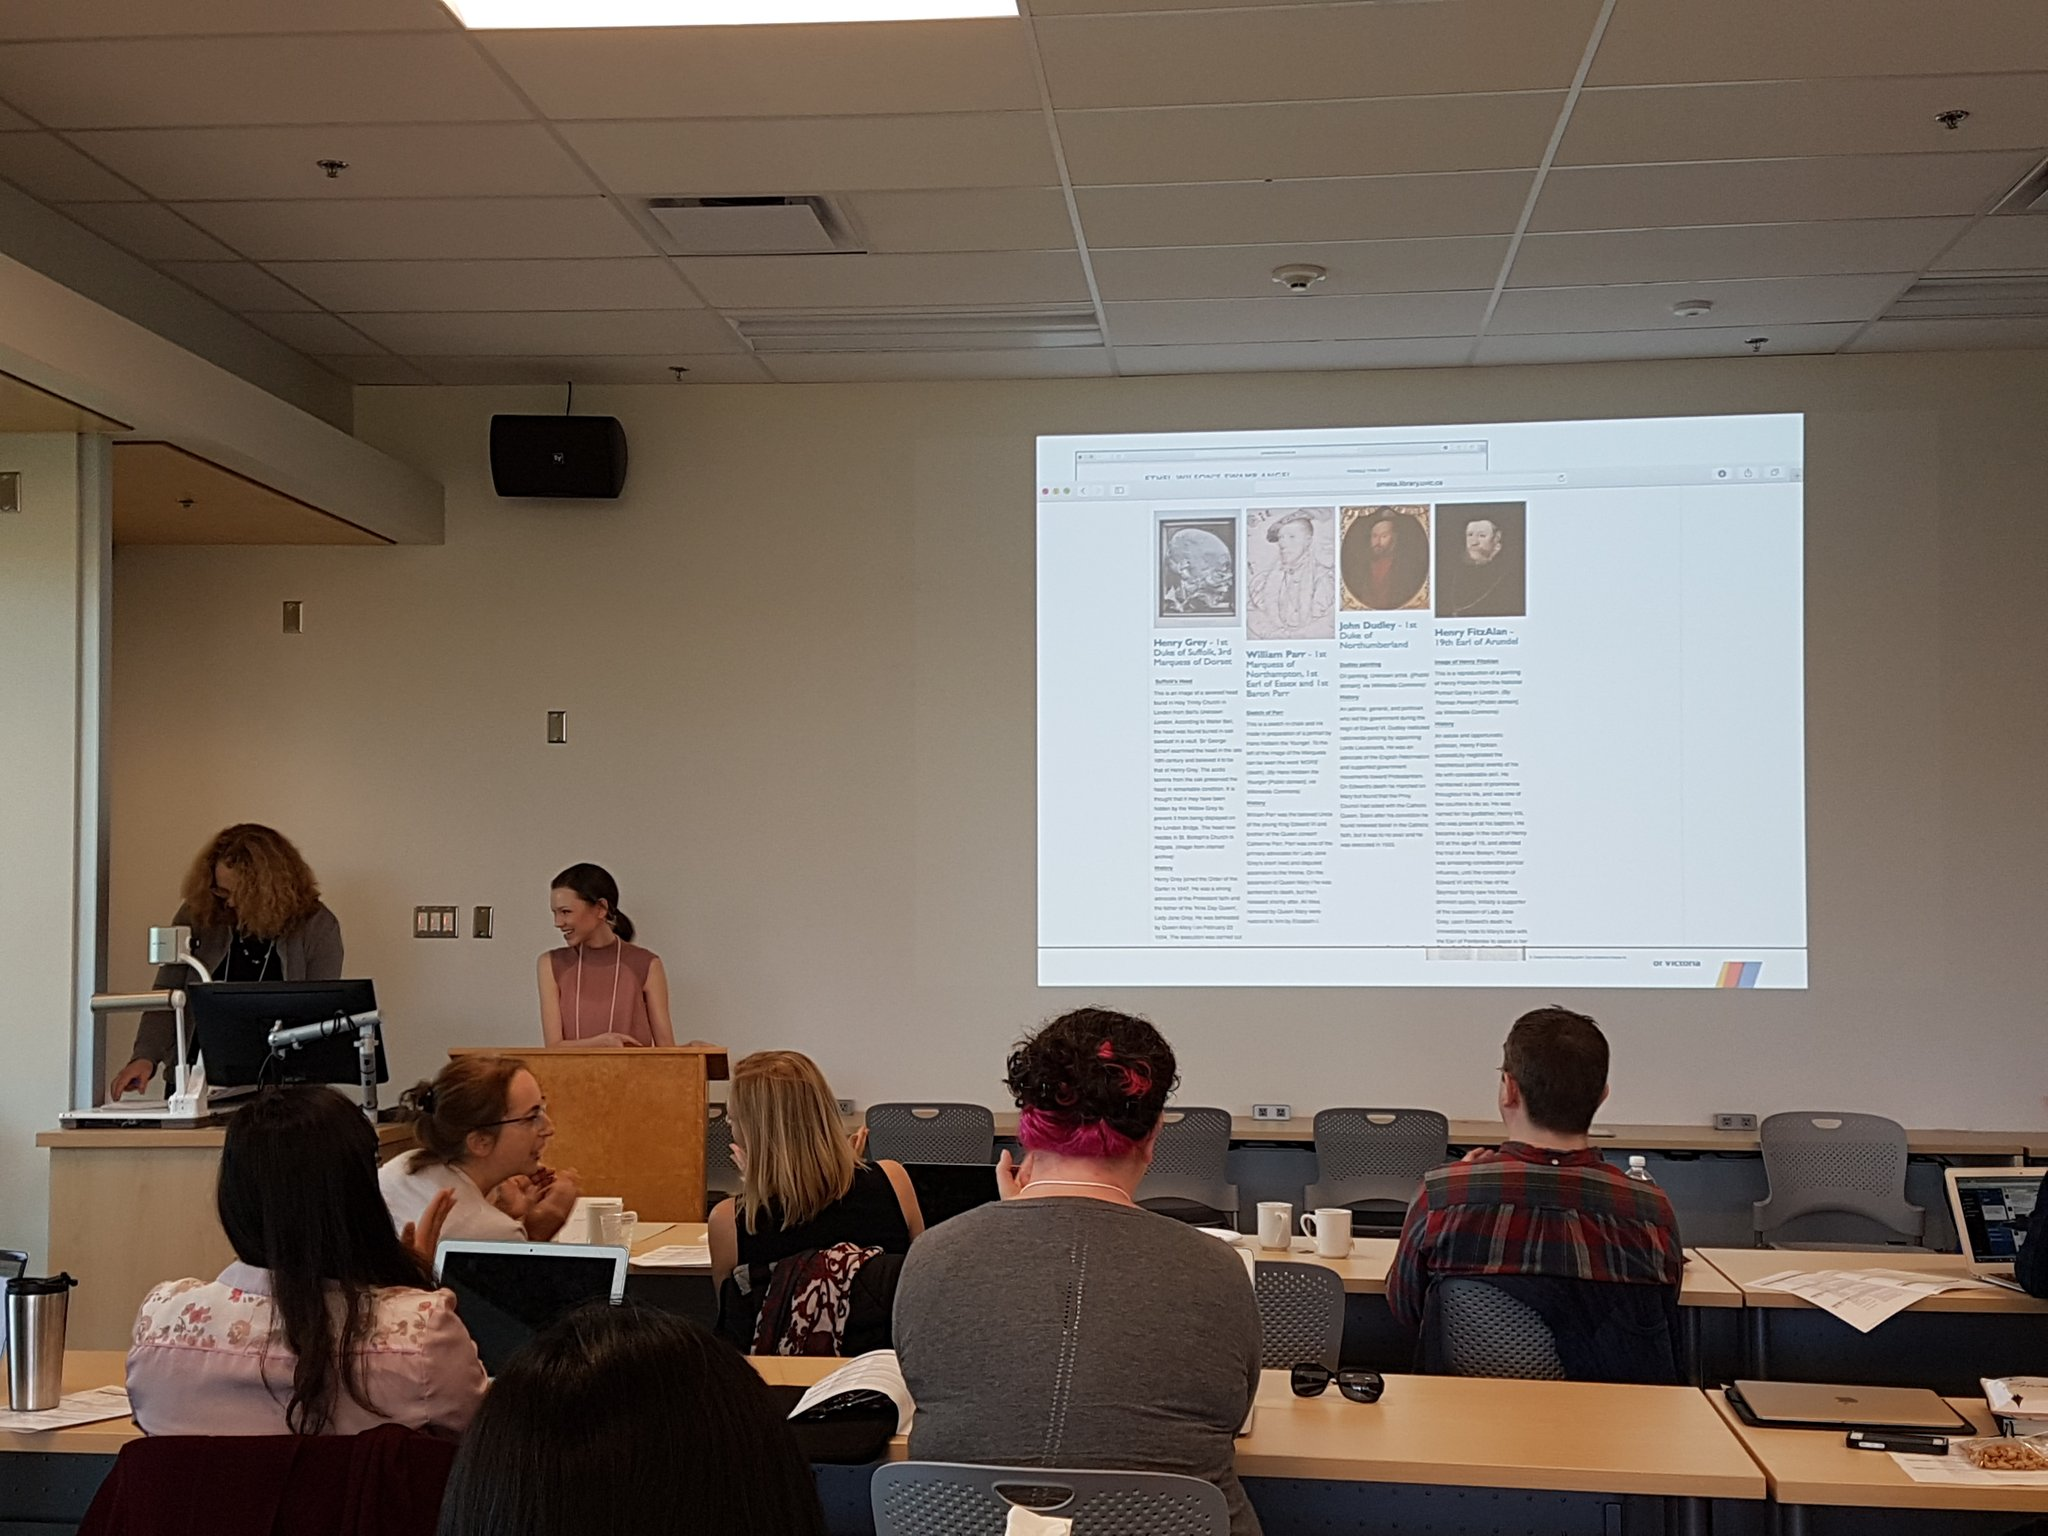 @UVicEnglGrad & nathalie boldt discuss the use of @zotero in collections-based library research @UVicSC @UVicEnglish @UVicLib #digsym17 https://t.co/kpjCiPH8wN